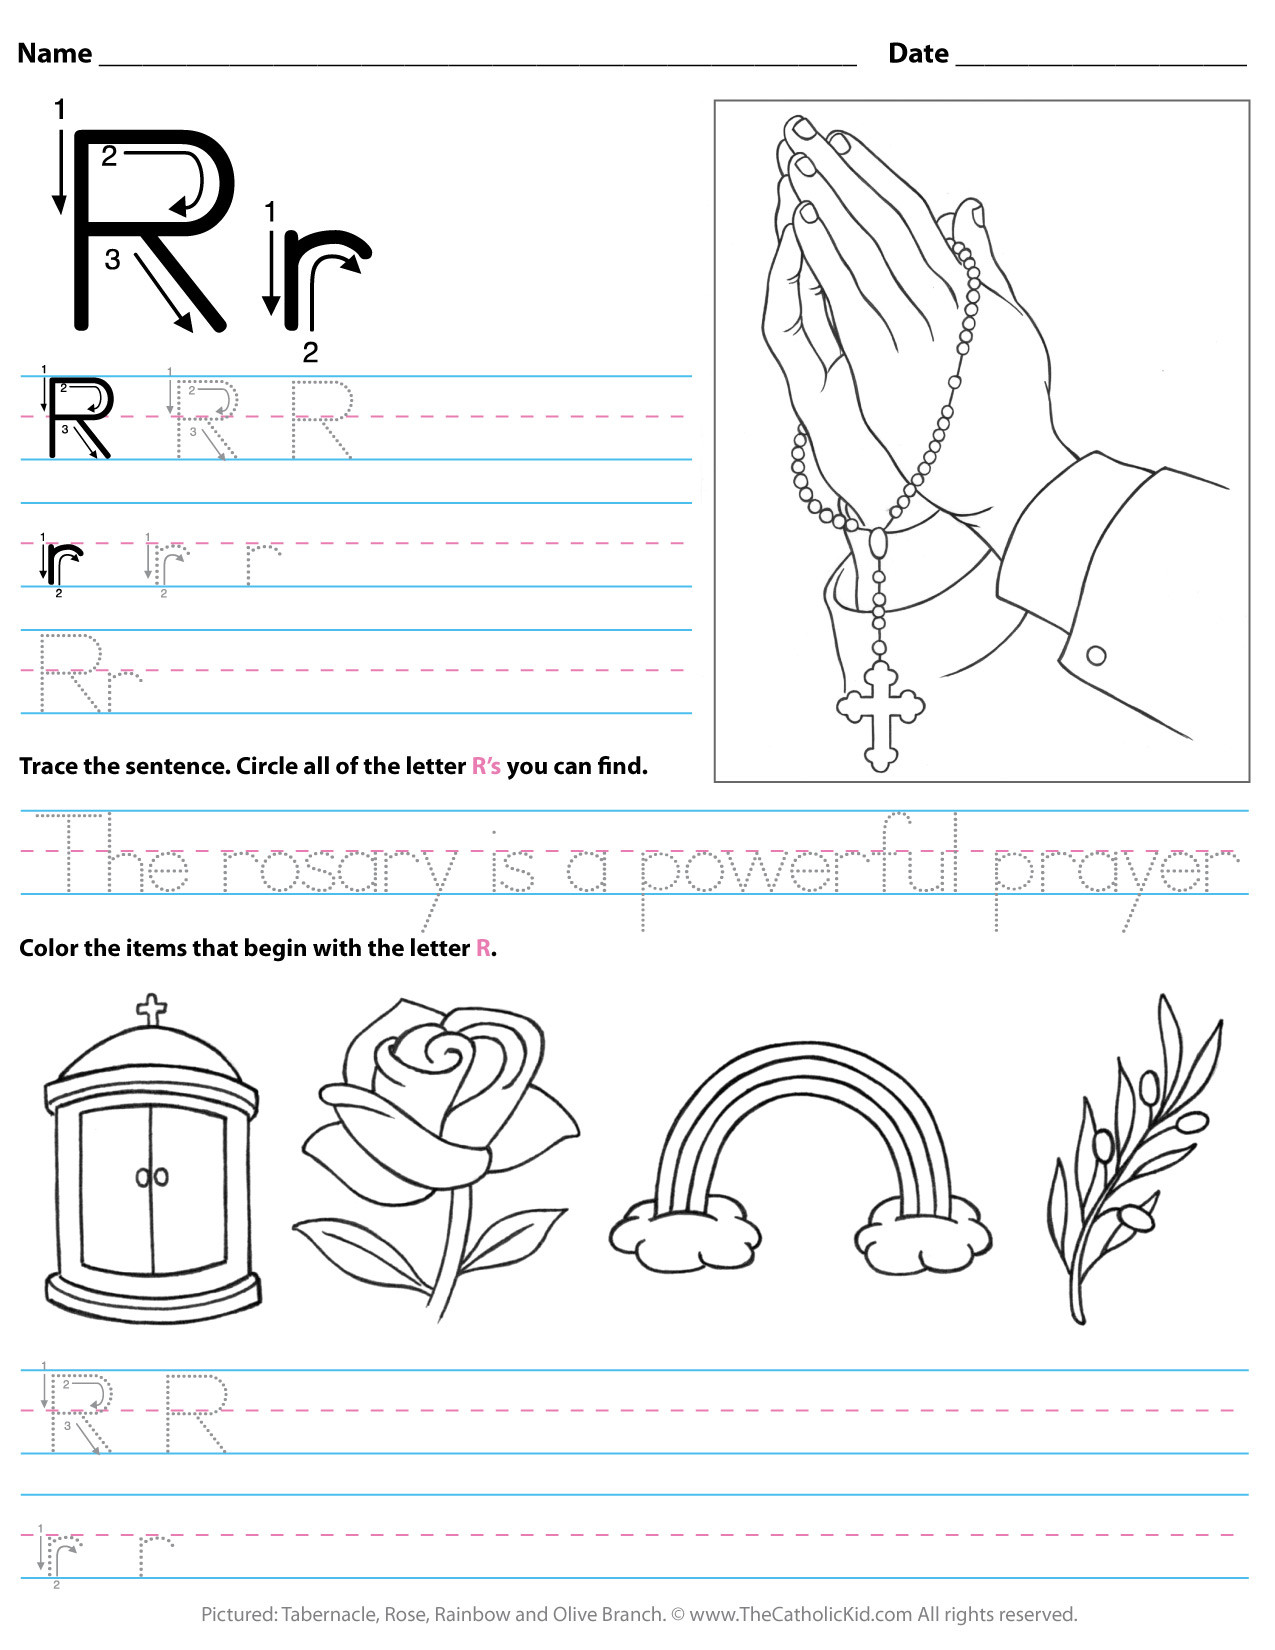 Rainbow Worksheets for Kindergarten Catholic Alphabet Letter R Worksheet Preschool Kindergarten